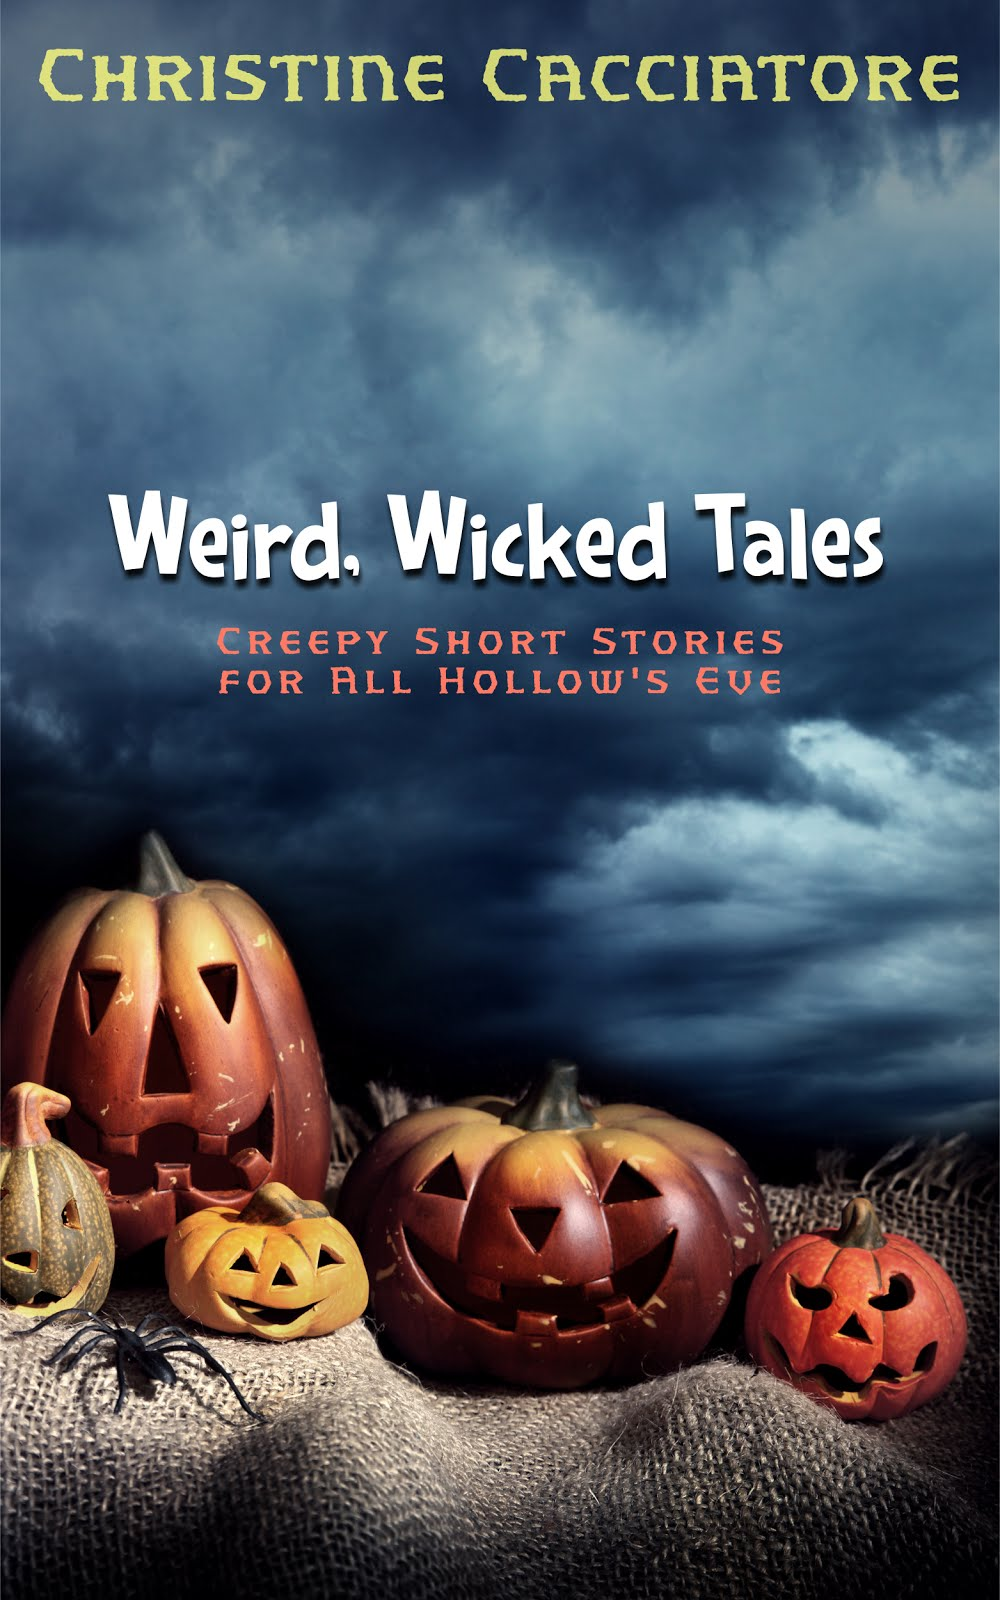 Weird, Wicked Tales...creepy short stories for All Hallow's Eve